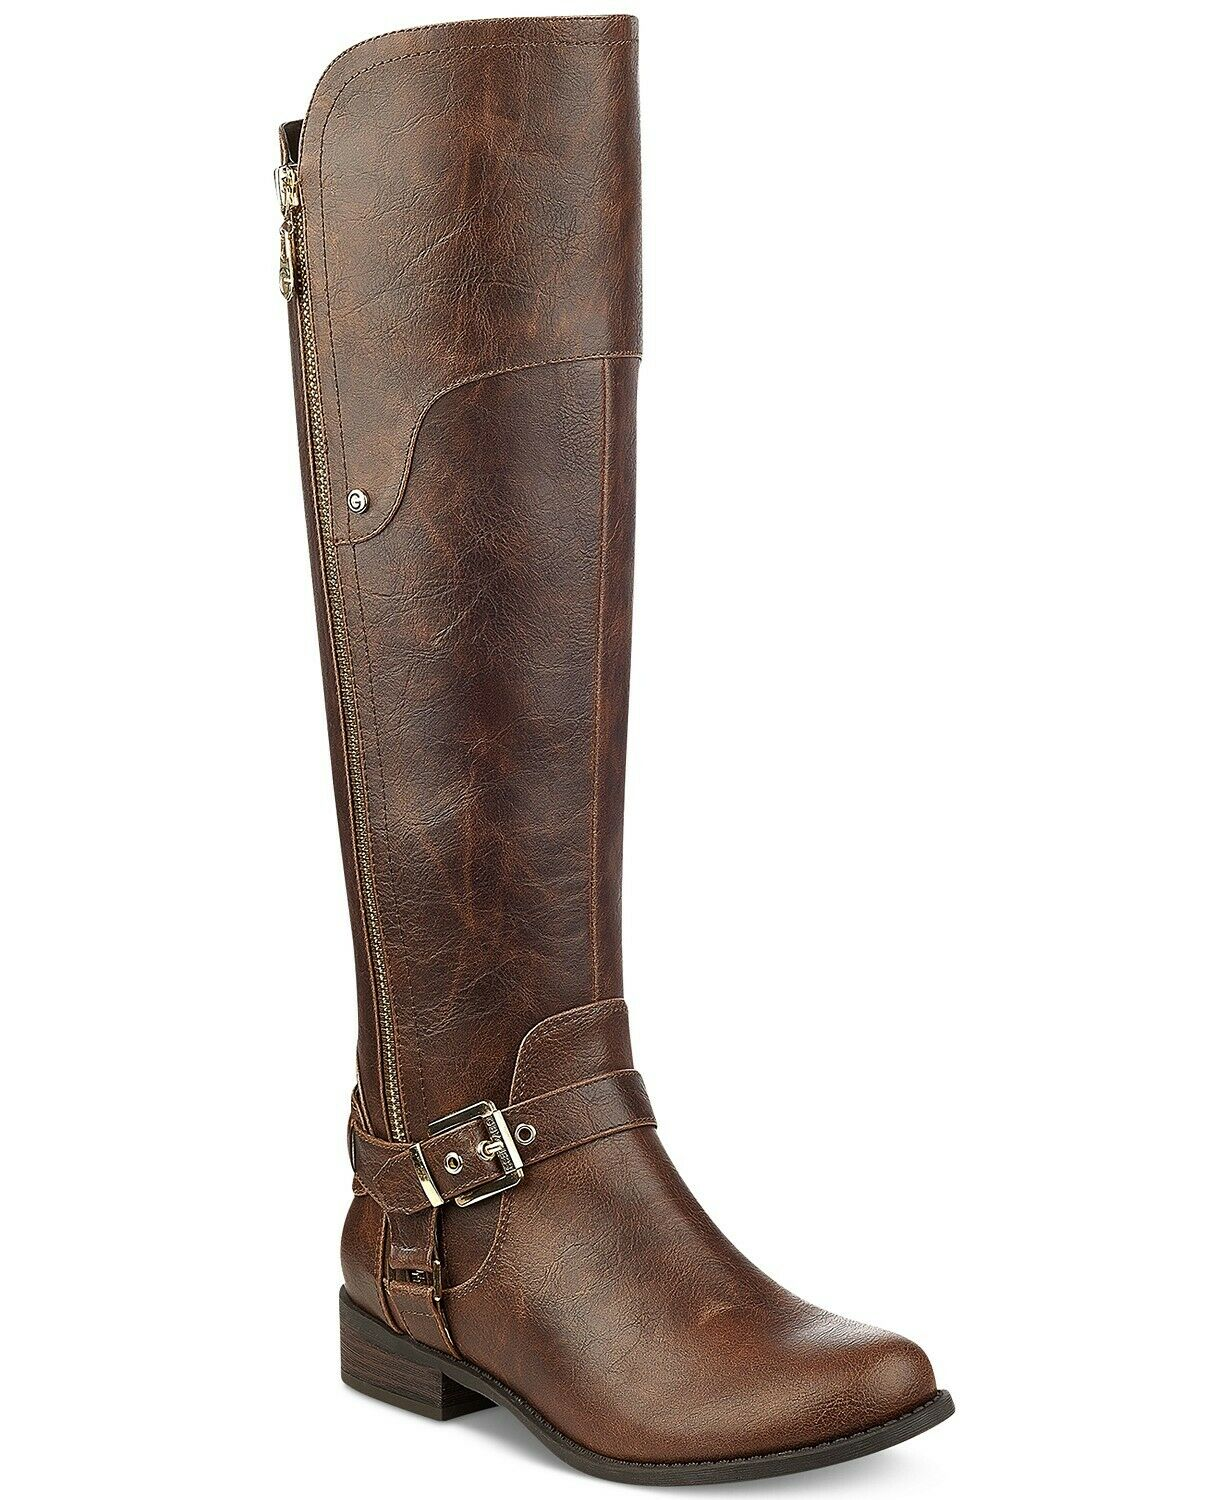 G by Guess Women's Hardson Closed Toe Knee High Fashion Boots-9.5 M Brown